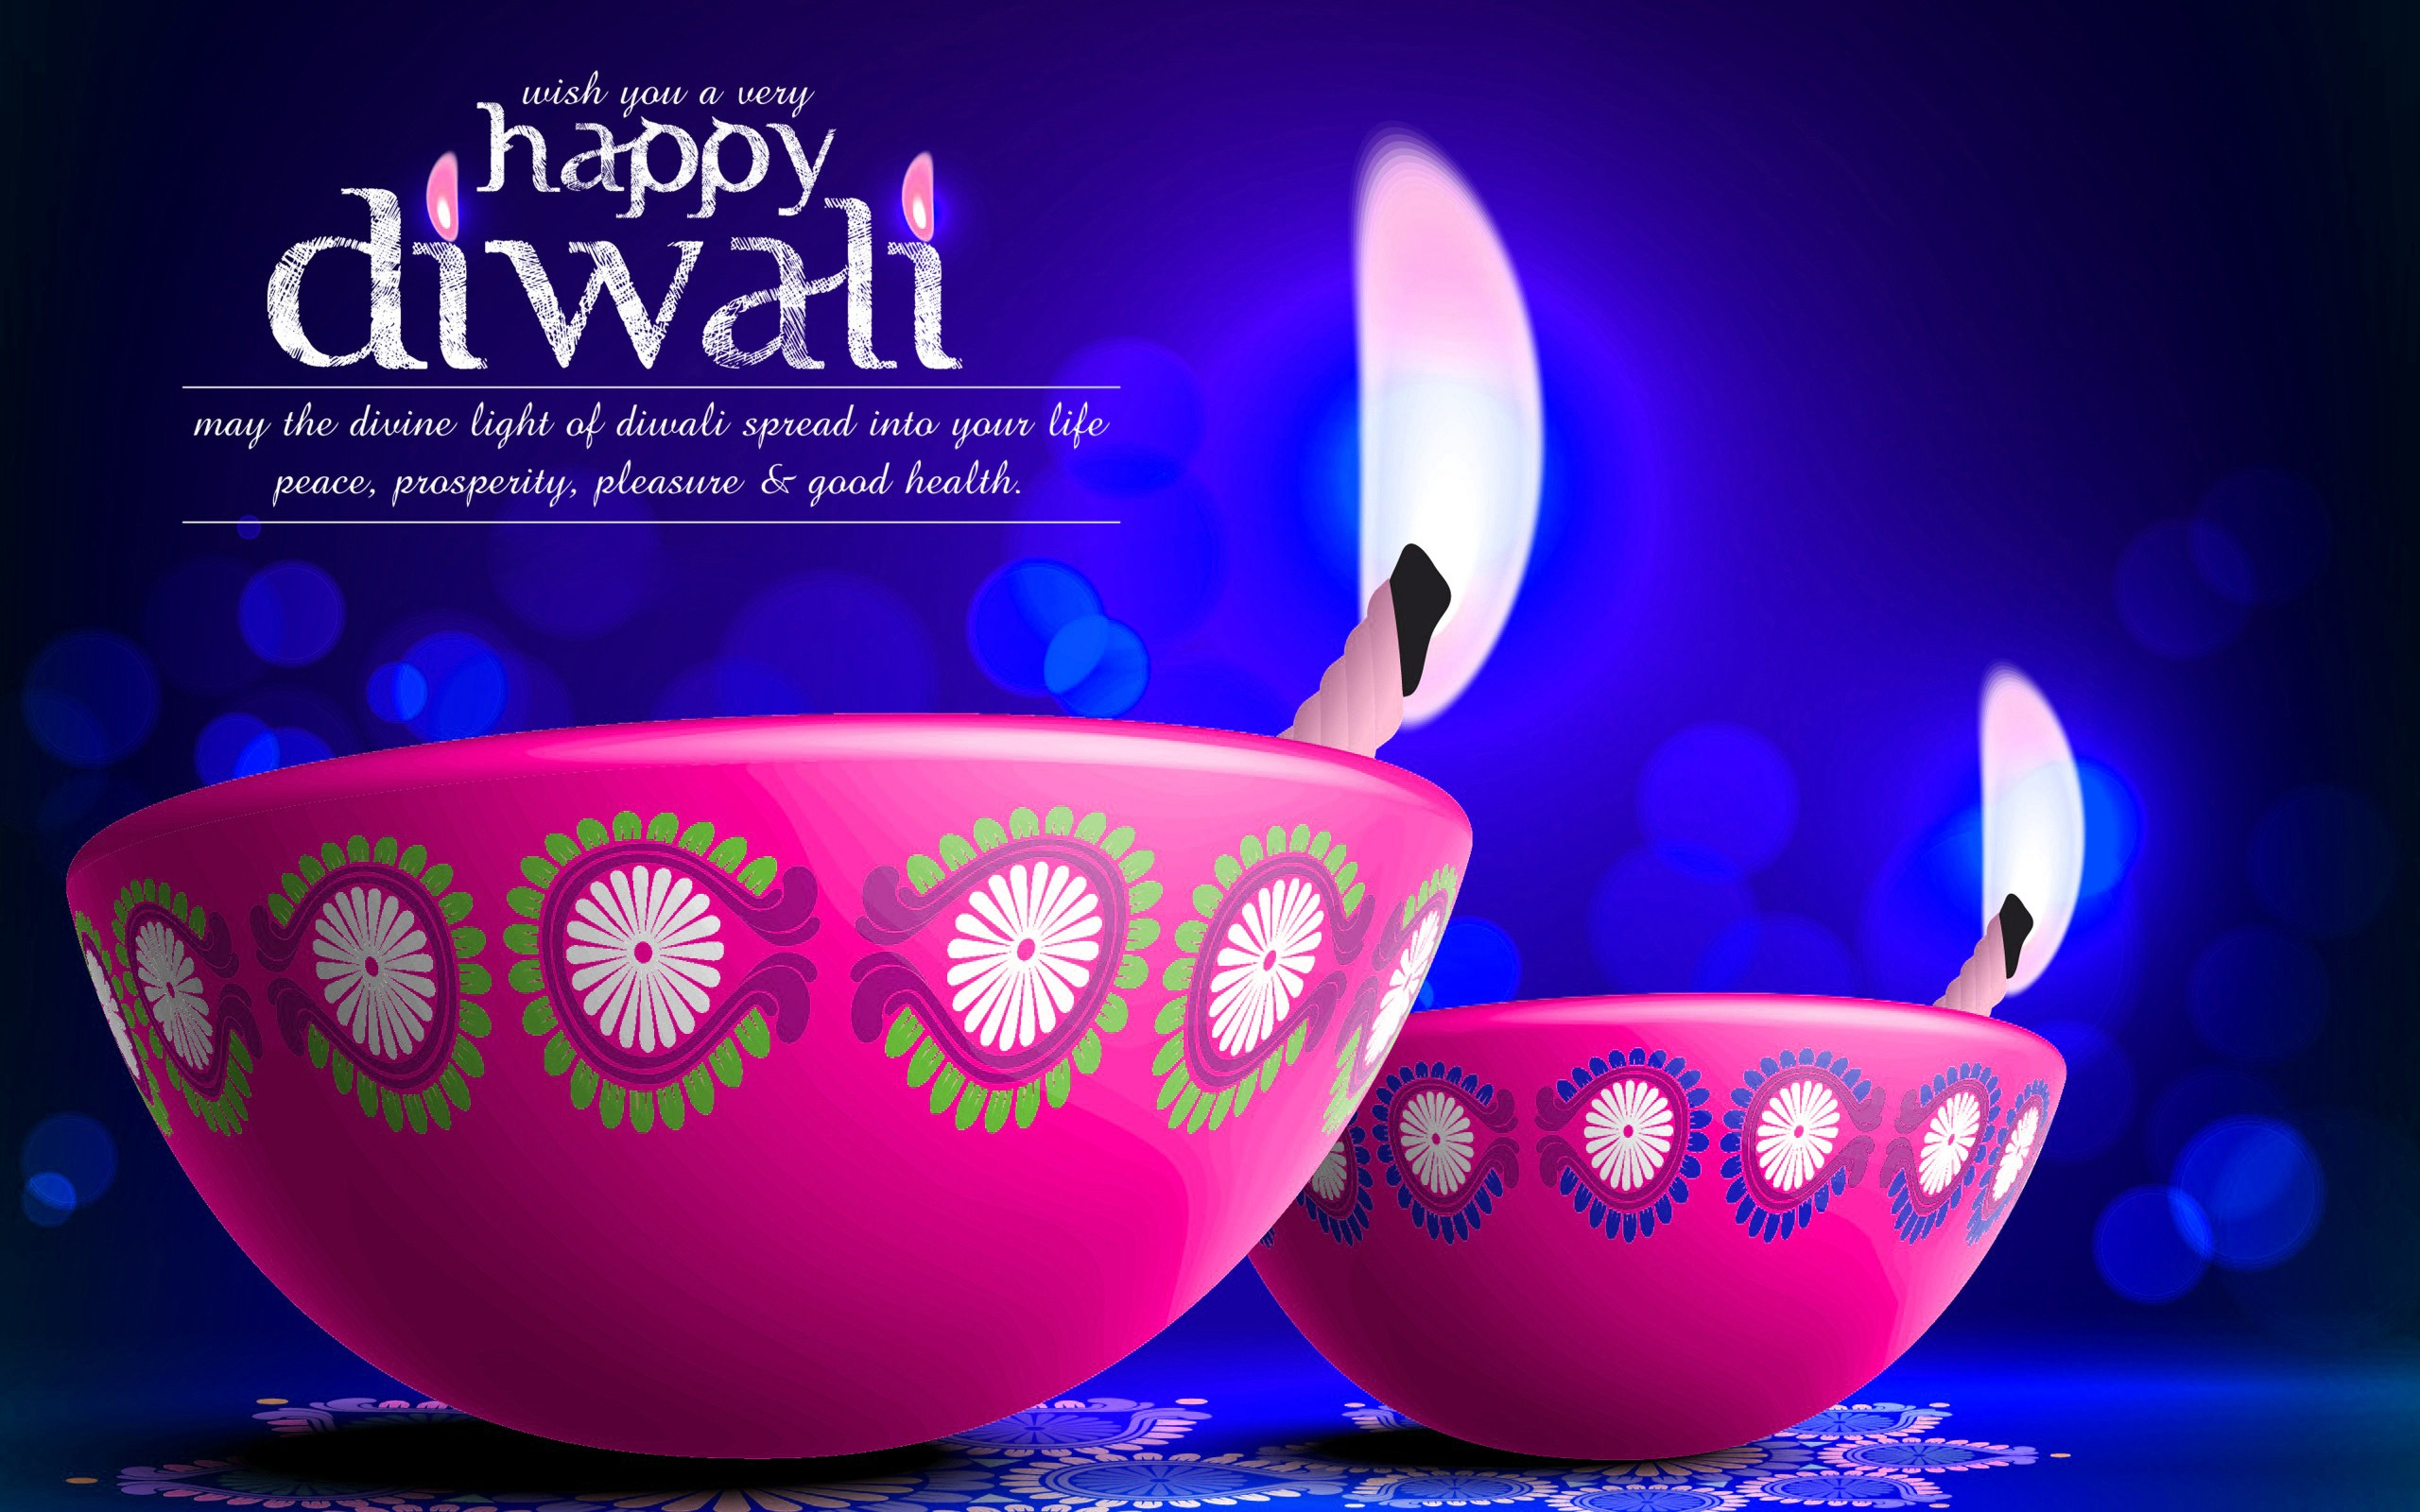 Happy diwali 2017 images quotes wishes sms greetings messages happy diwali 2017 images quotes wishes sms greetings messages pictures photos and wallpapers kristyandbryce Choice Image